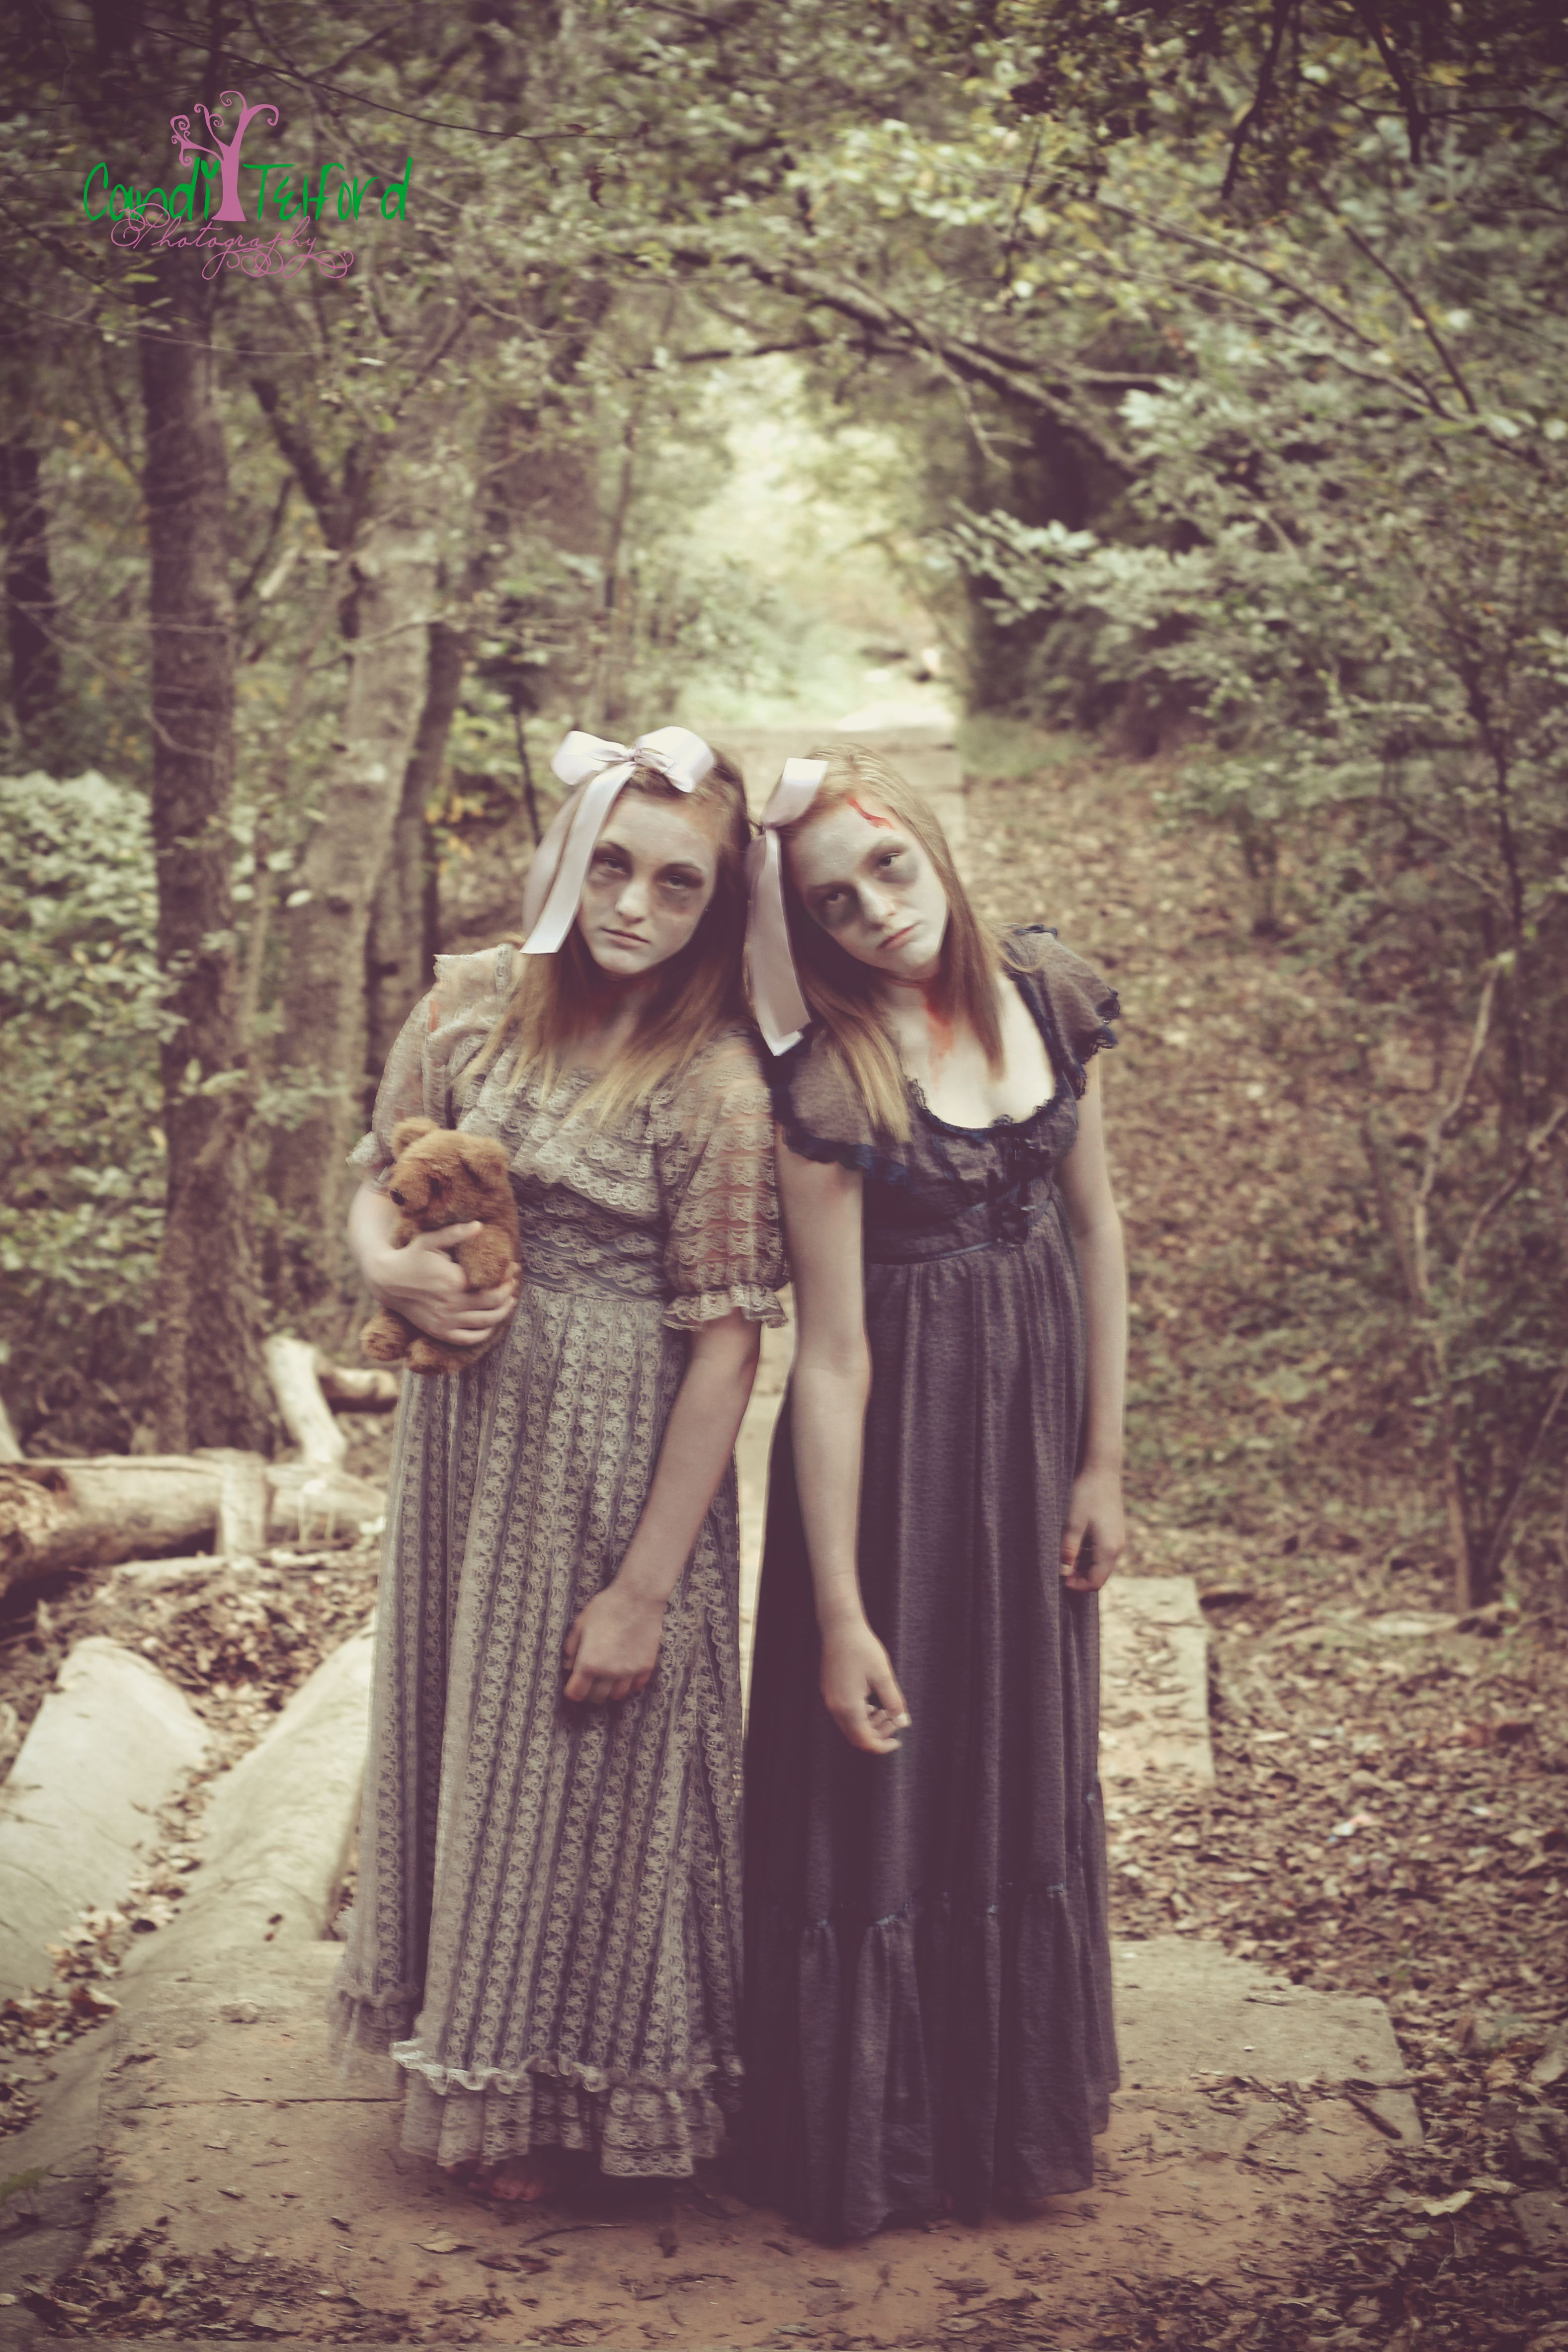 halloween creepy ghost twins girls costume candi telford photography canditelfordphotographycom sc 1 st pinterest